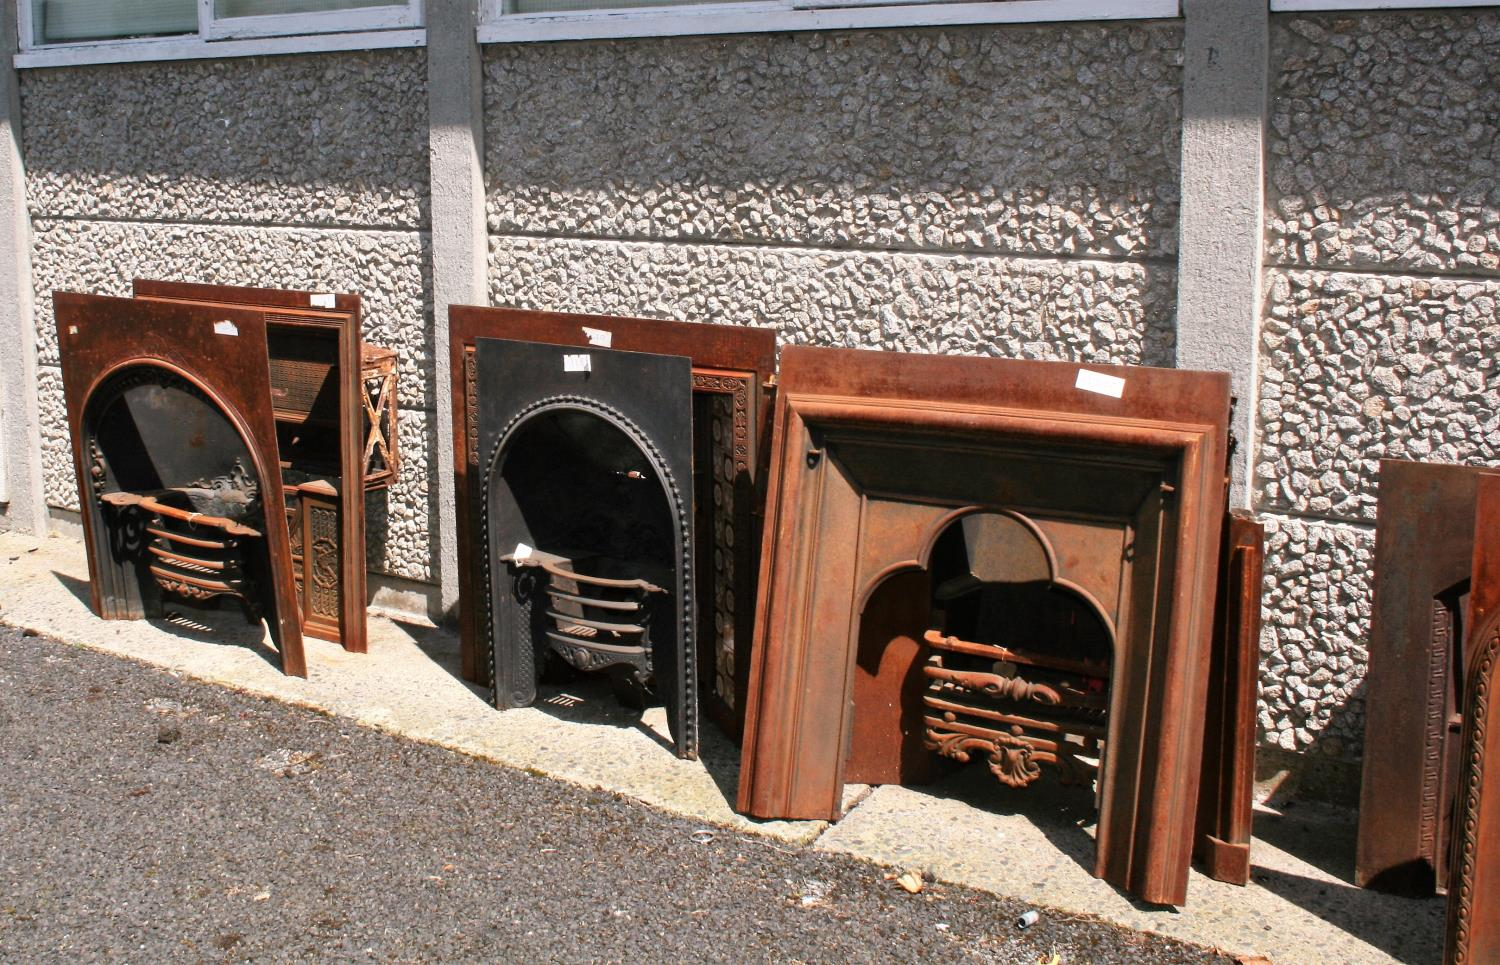 Large collection of antique cast iron fire insets, fire grates, fenders etc. - Image 6 of 6